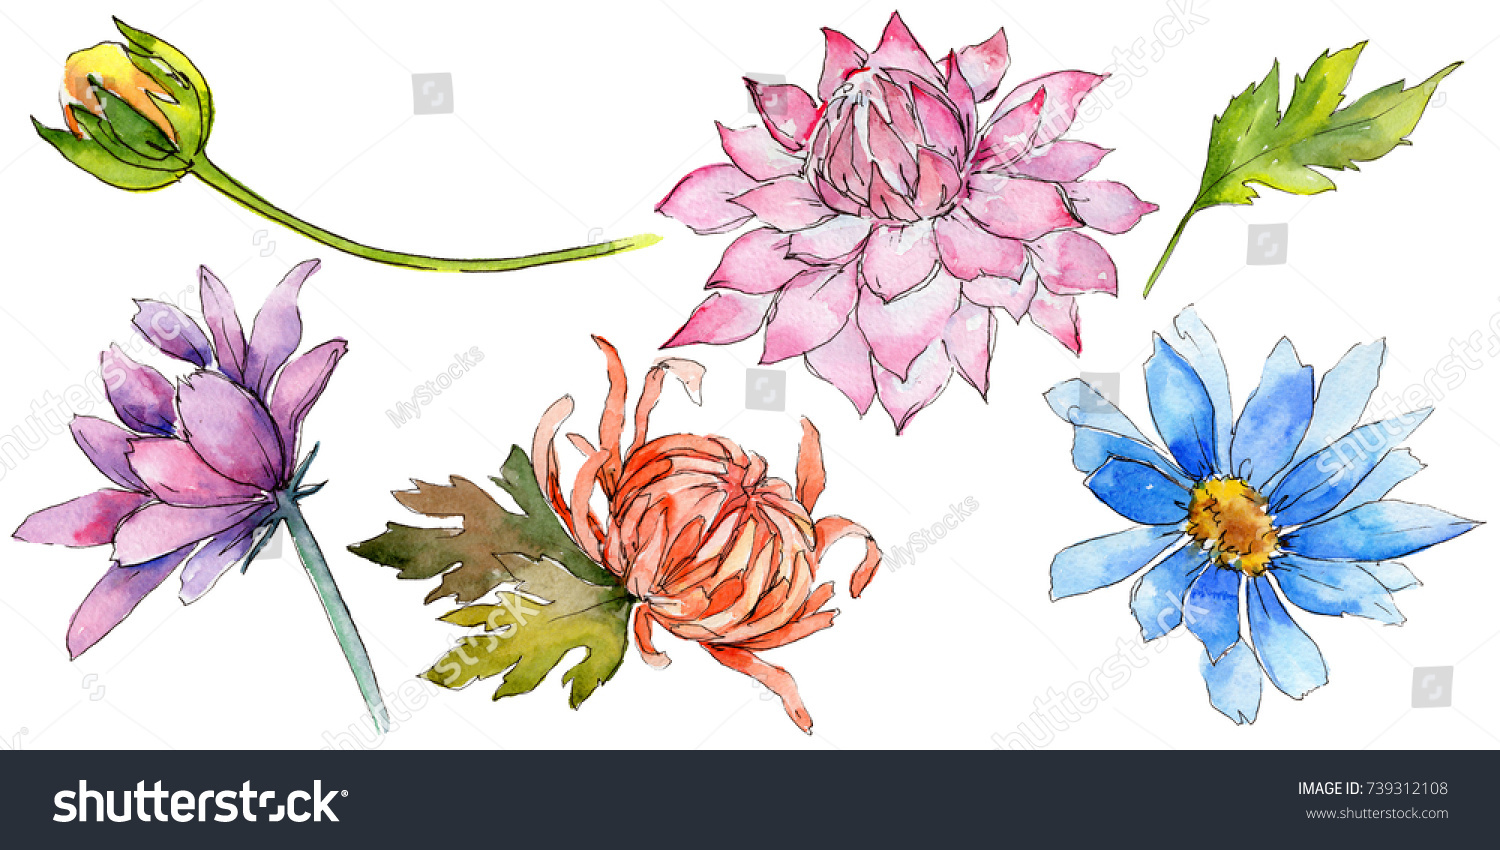 Wildflower aster flower watercolor style isolated stock illustration wildflower aster flower in a watercolor style isolated full name of the plant aster izmirmasajfo Choice Image